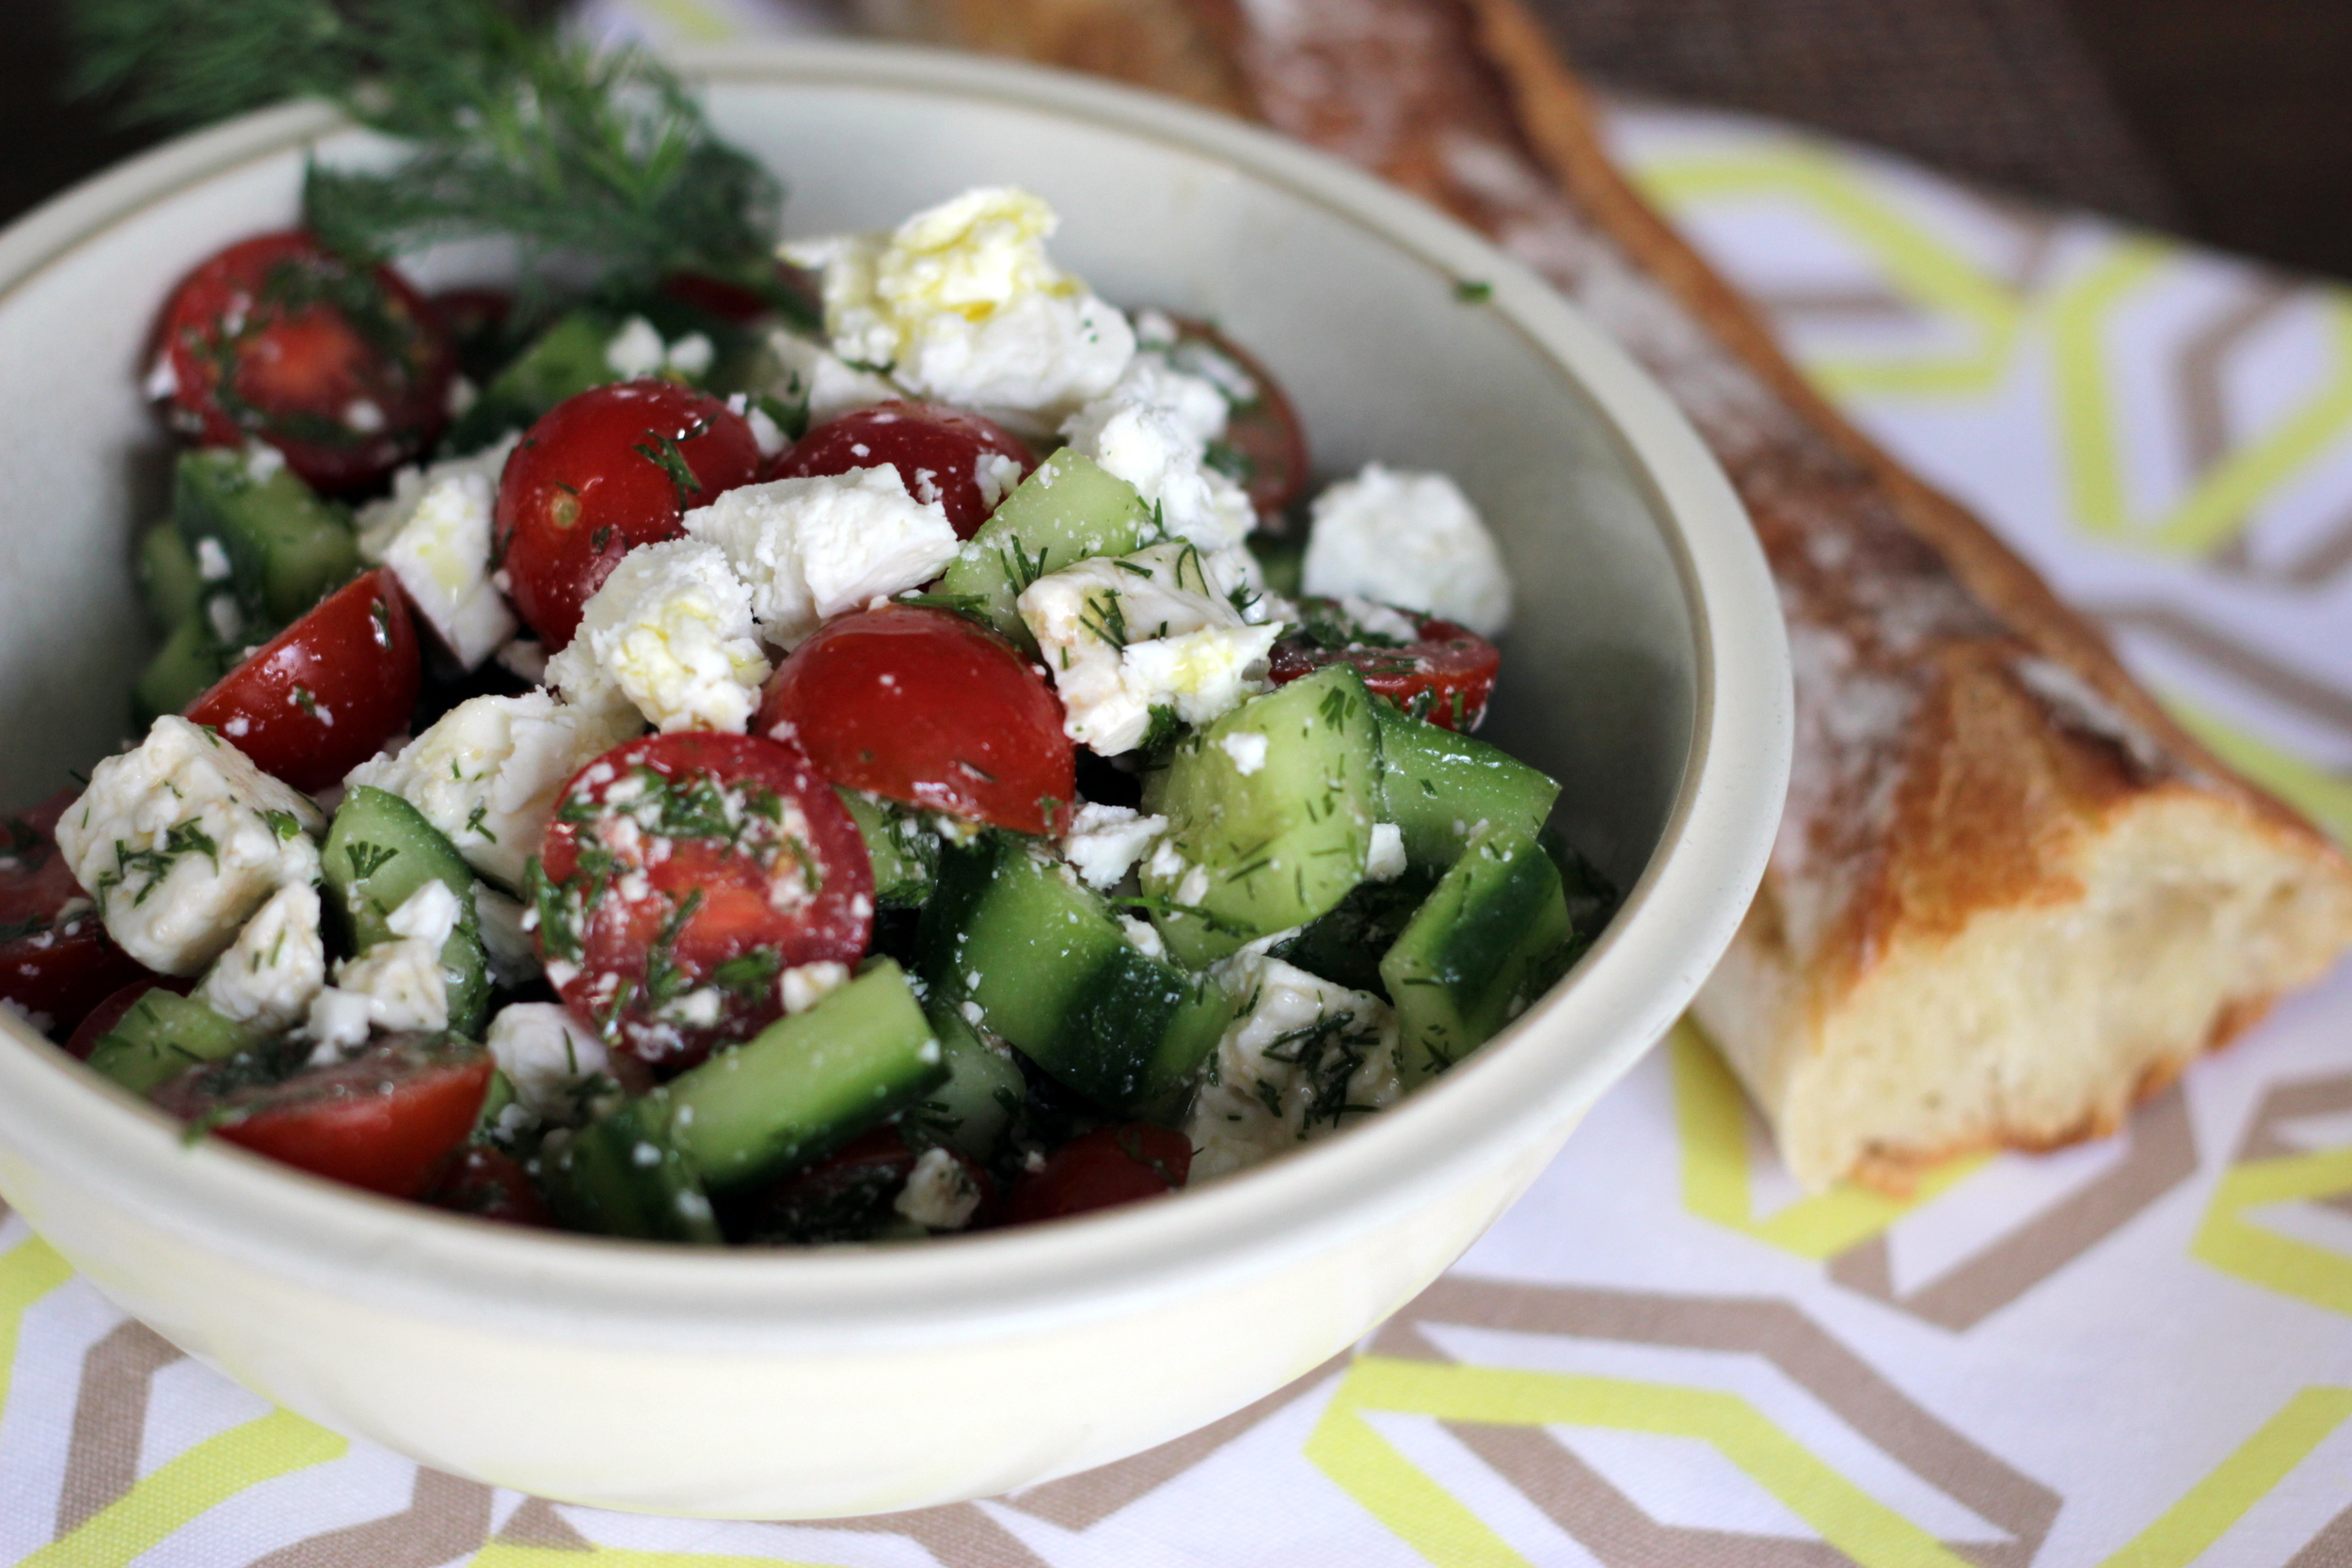 My favorite thing to do with feta: greek salad. This one has fresh cherry tomatoes and mini cucumbers from the market and some really nice red wine vinegar.